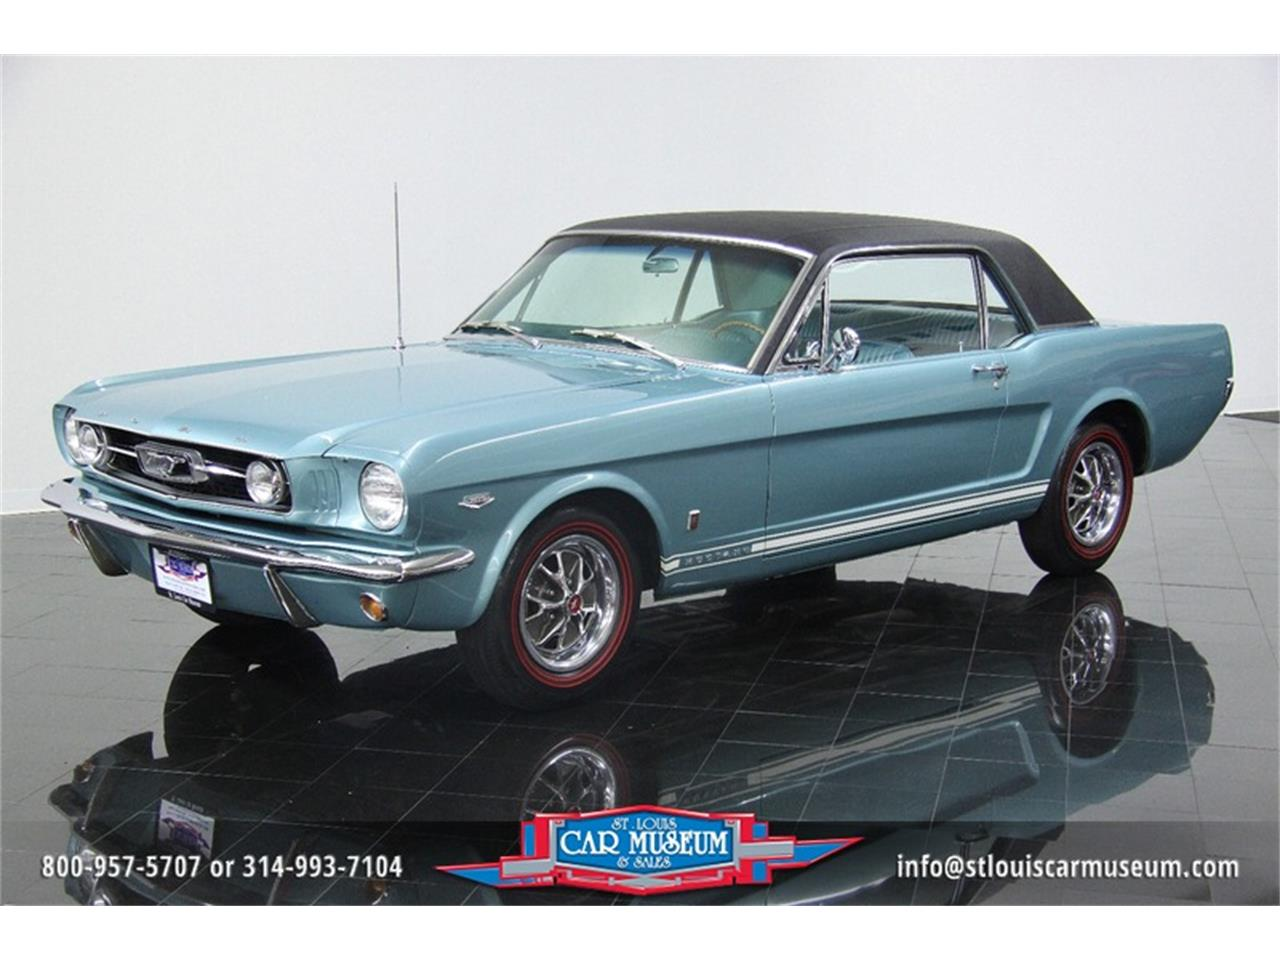 Large picture of 66 mustang k code gt coupe gx1t